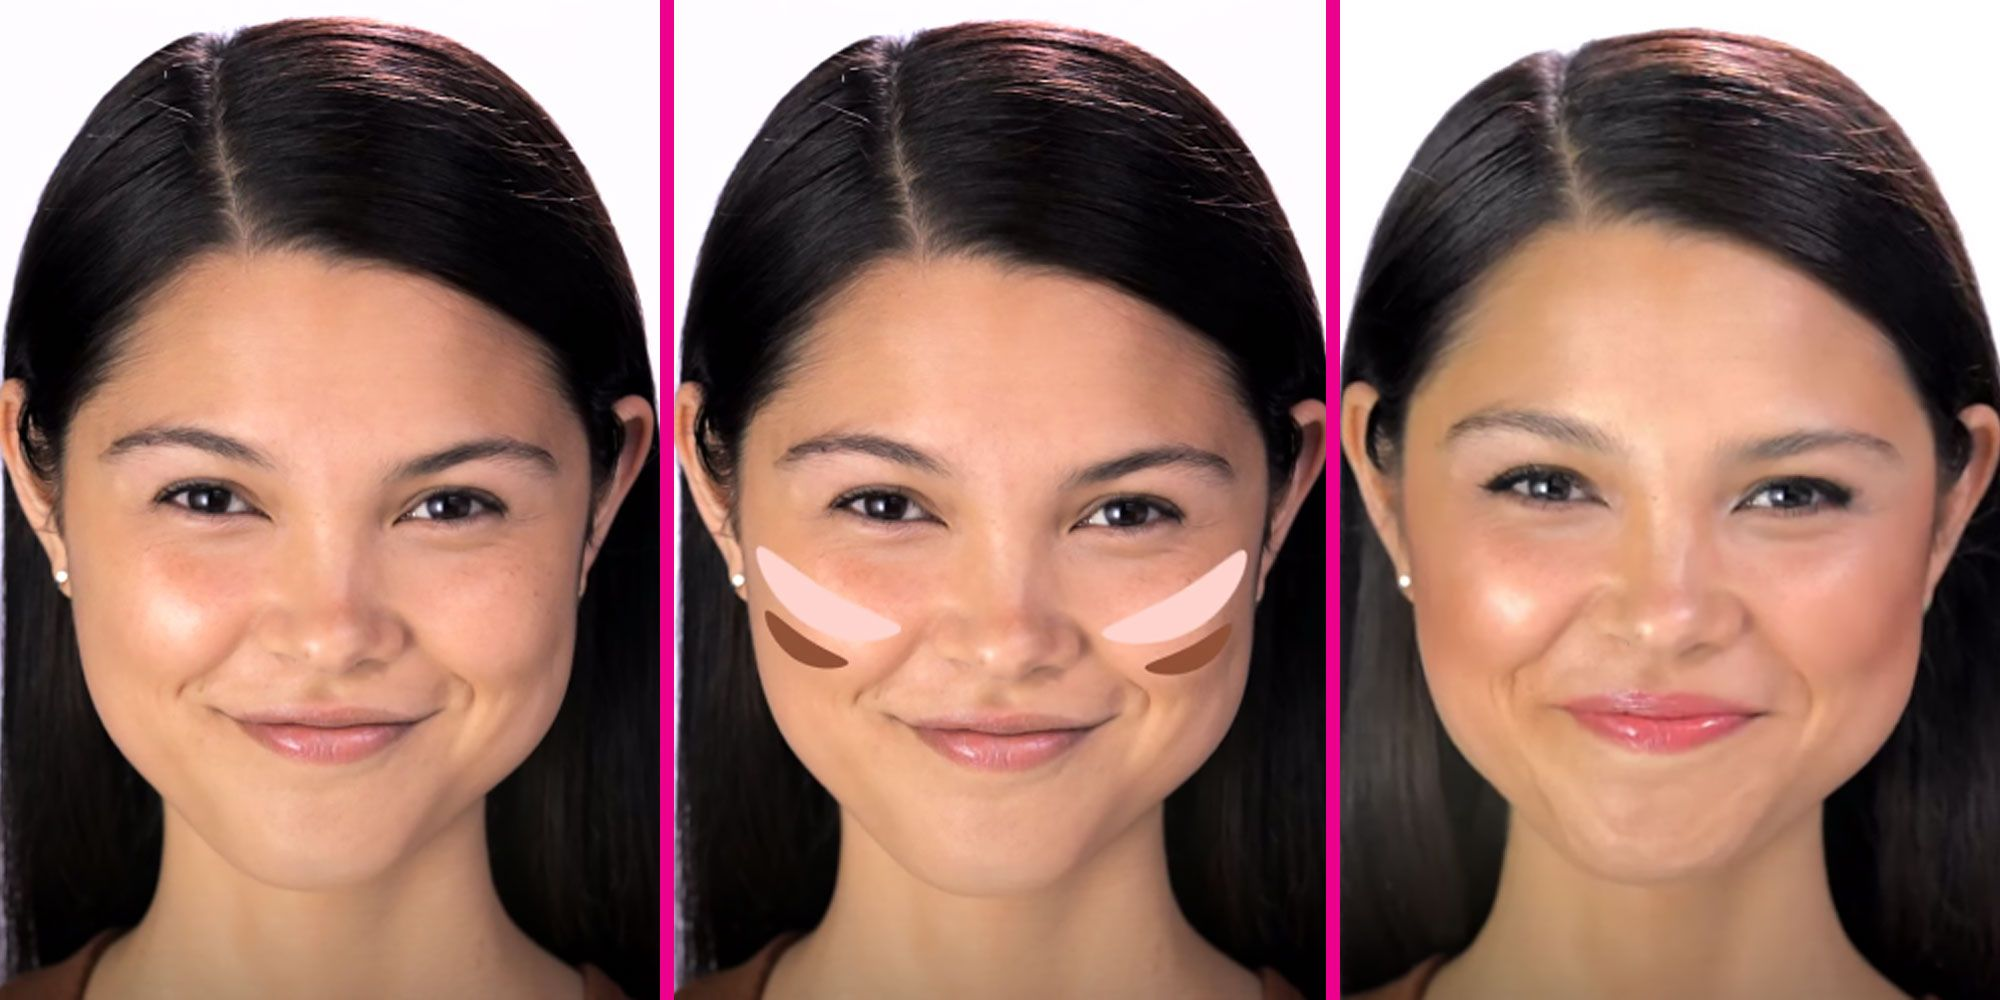 How To Contour In Less Than 1 Minute